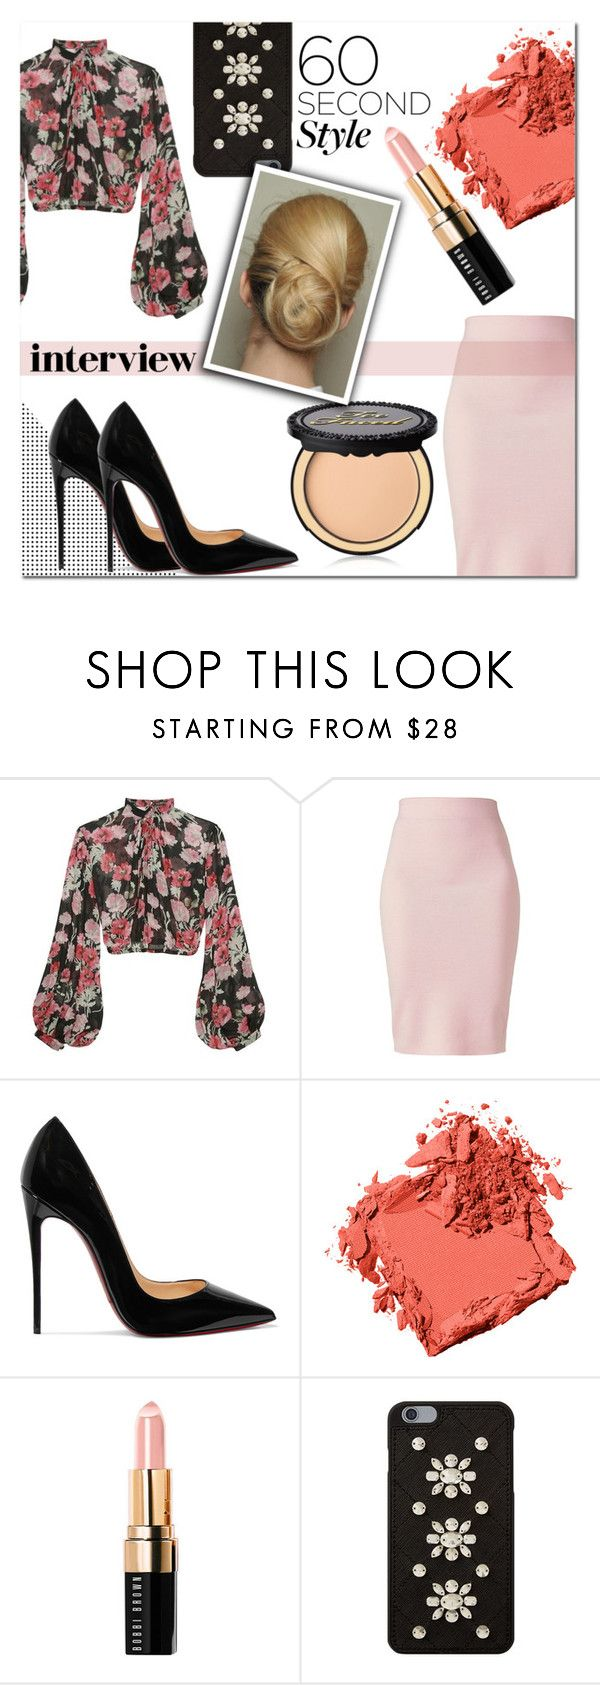 """""""60 second interview outfit"""" by gingembre ❤ liked on Polyvore featuring Jill Stuart, Winser London, Christian Louboutin, Bobbi Brown Cosmetics, MICHAEL Michael Kors and Too Faced Cosmetics"""